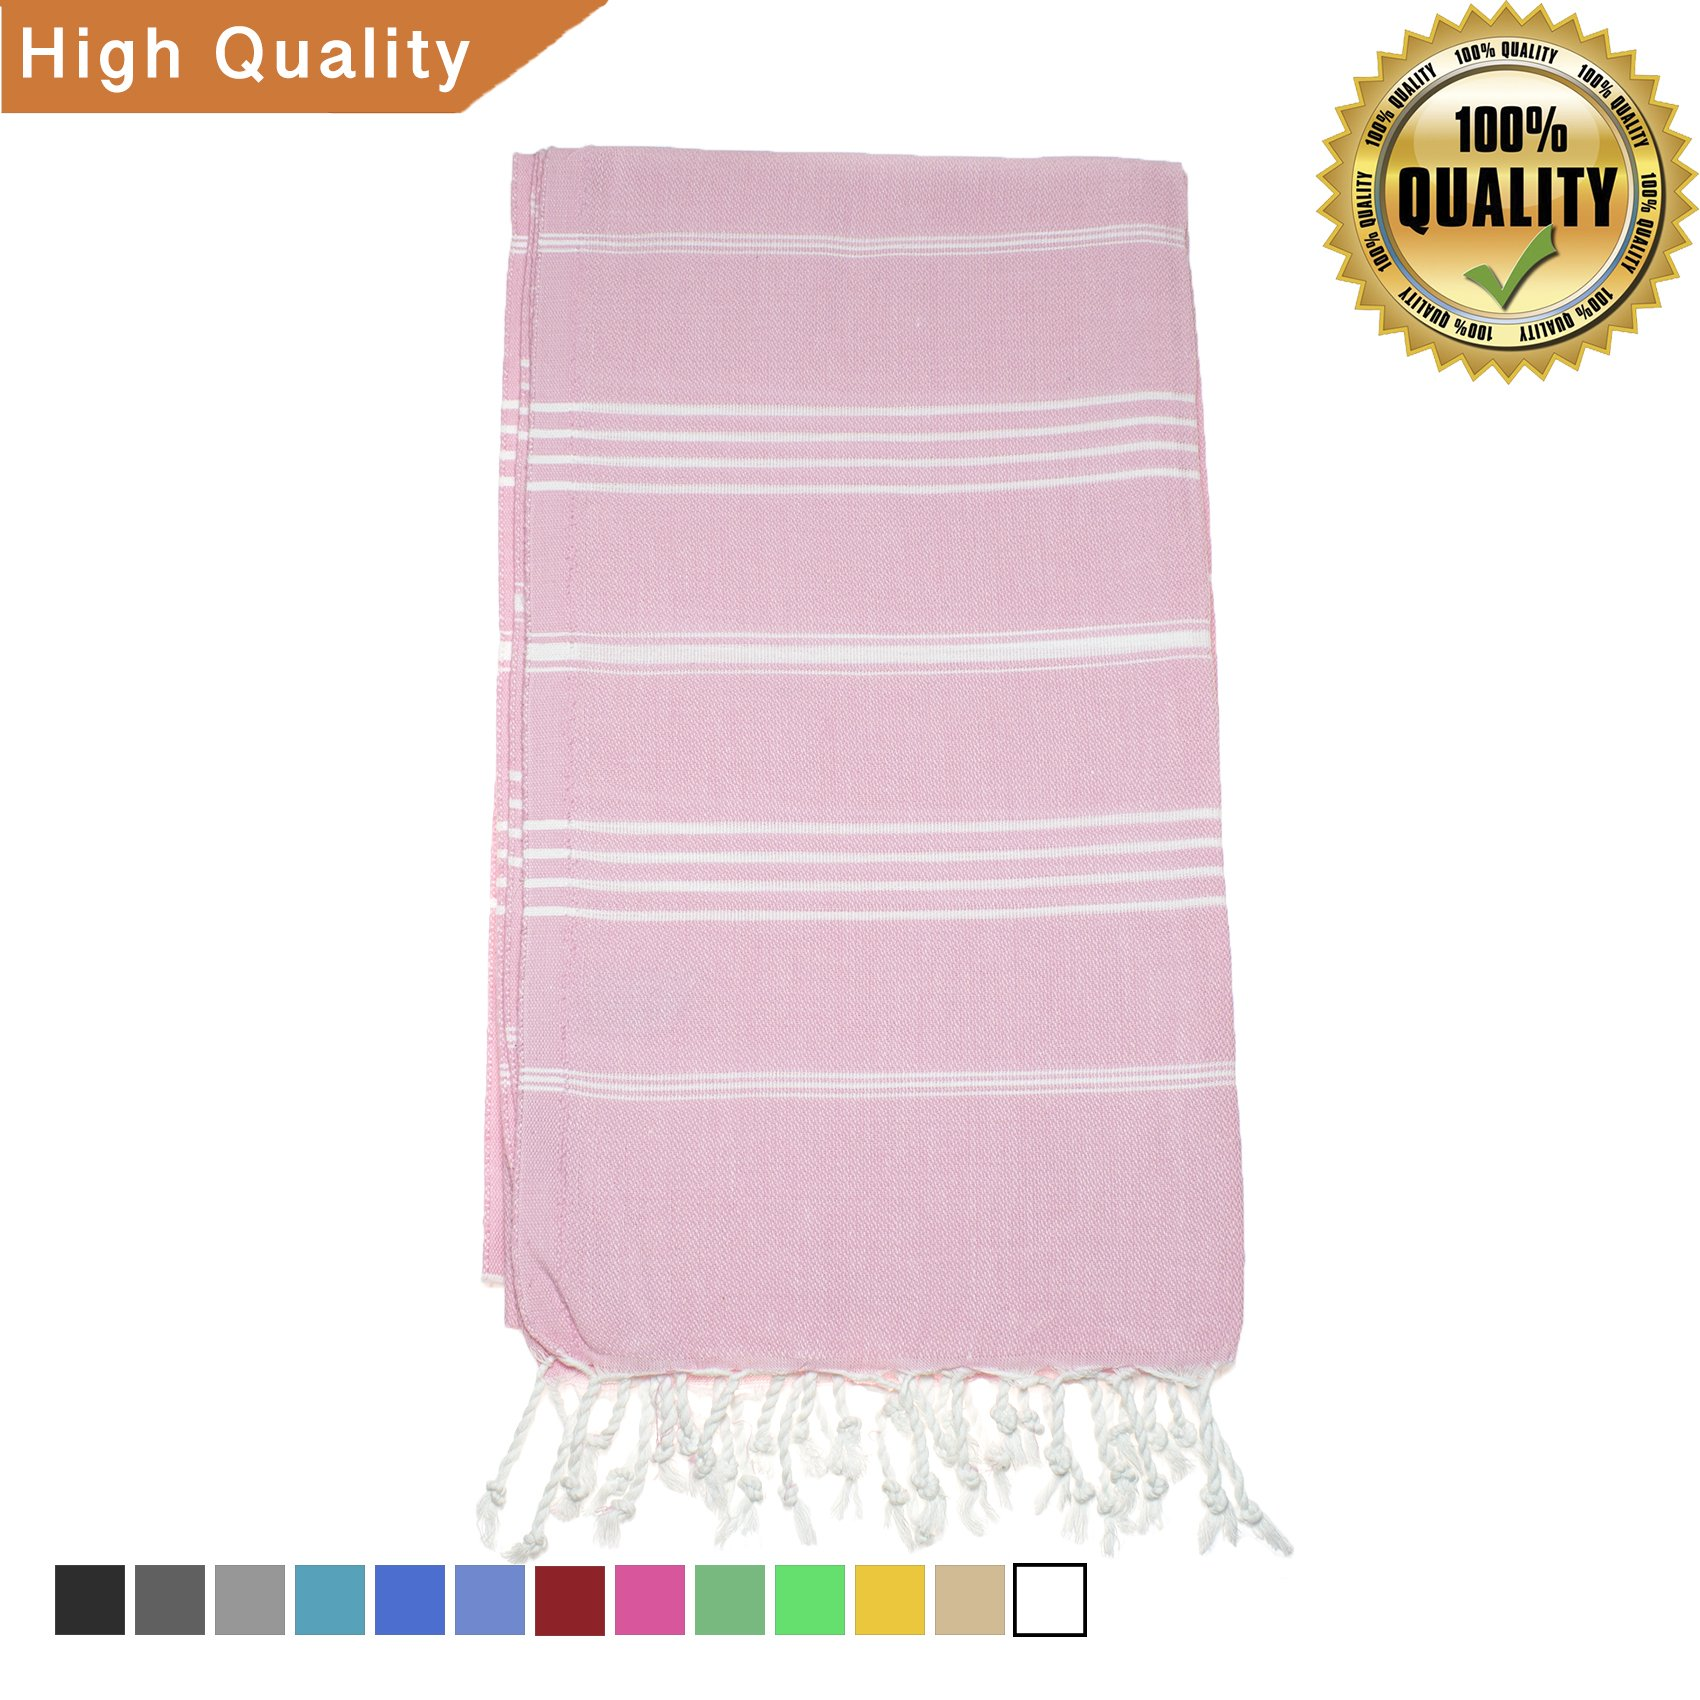 Exclusive District 100% Cotton Turkish Towel/Peshtemal for Beach, Spa, Pool, Bath, Gym 38''x70'' by (Flamingo)